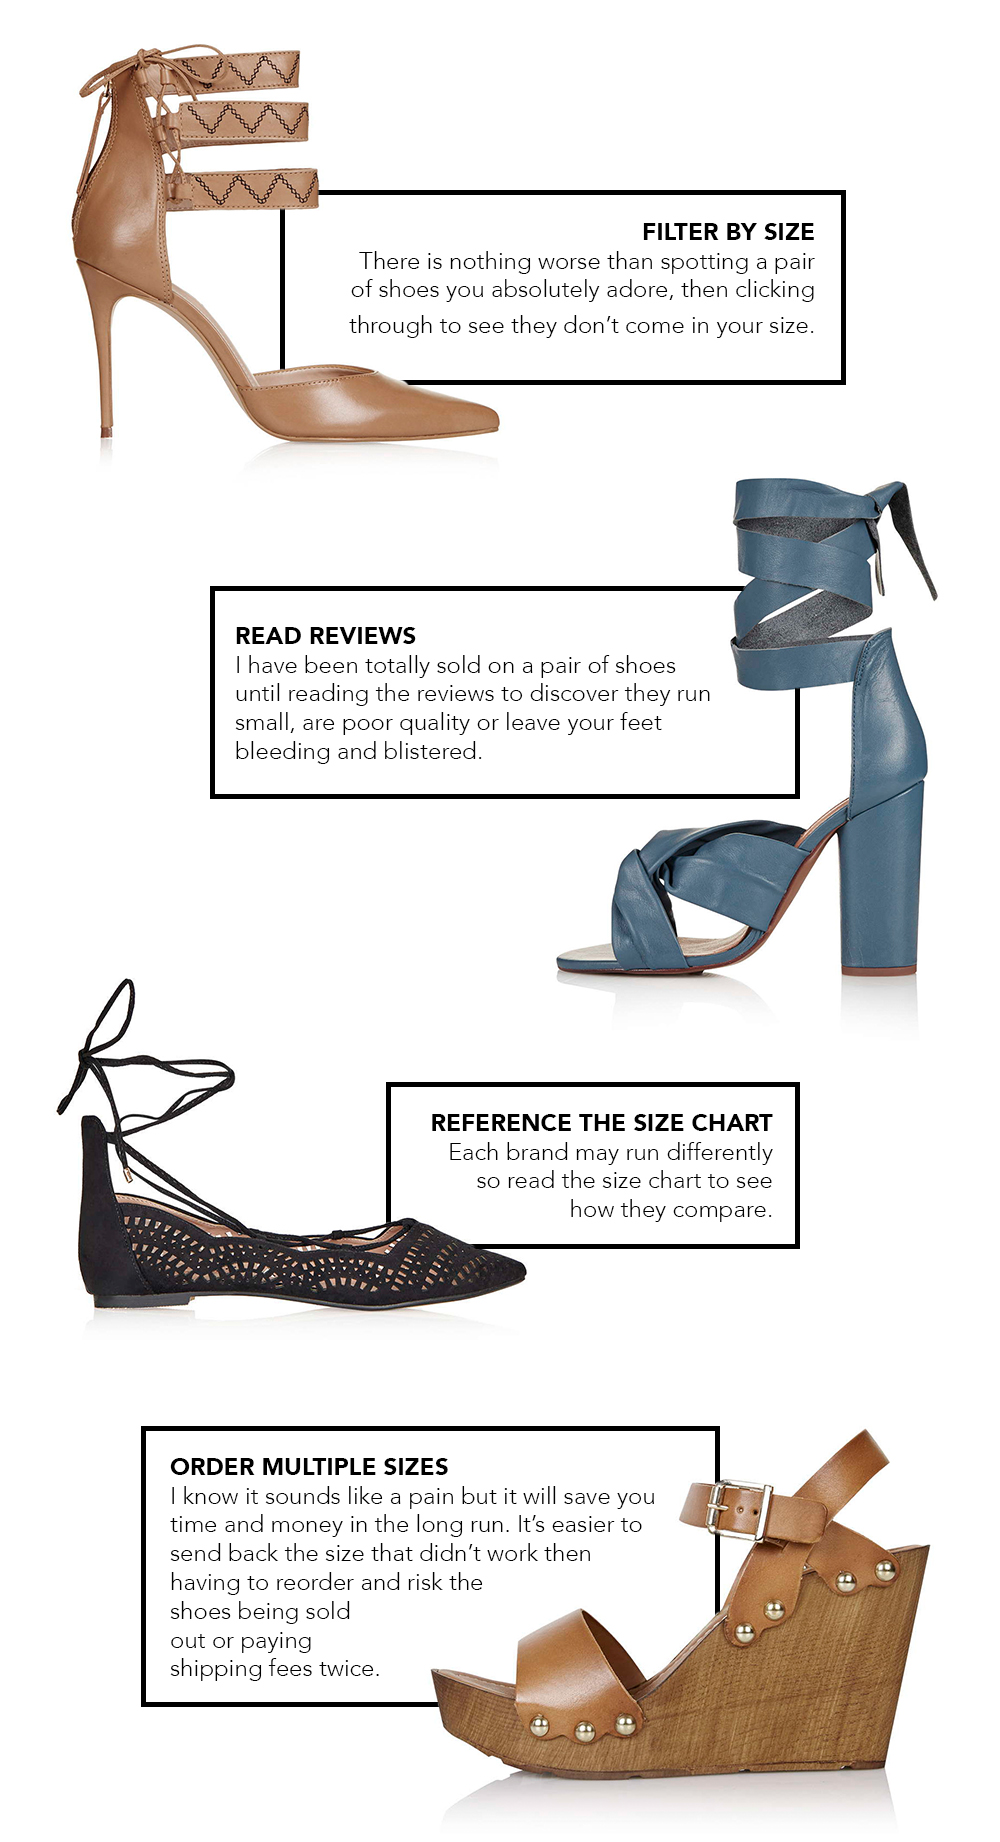 online-shoe-shopping-guide